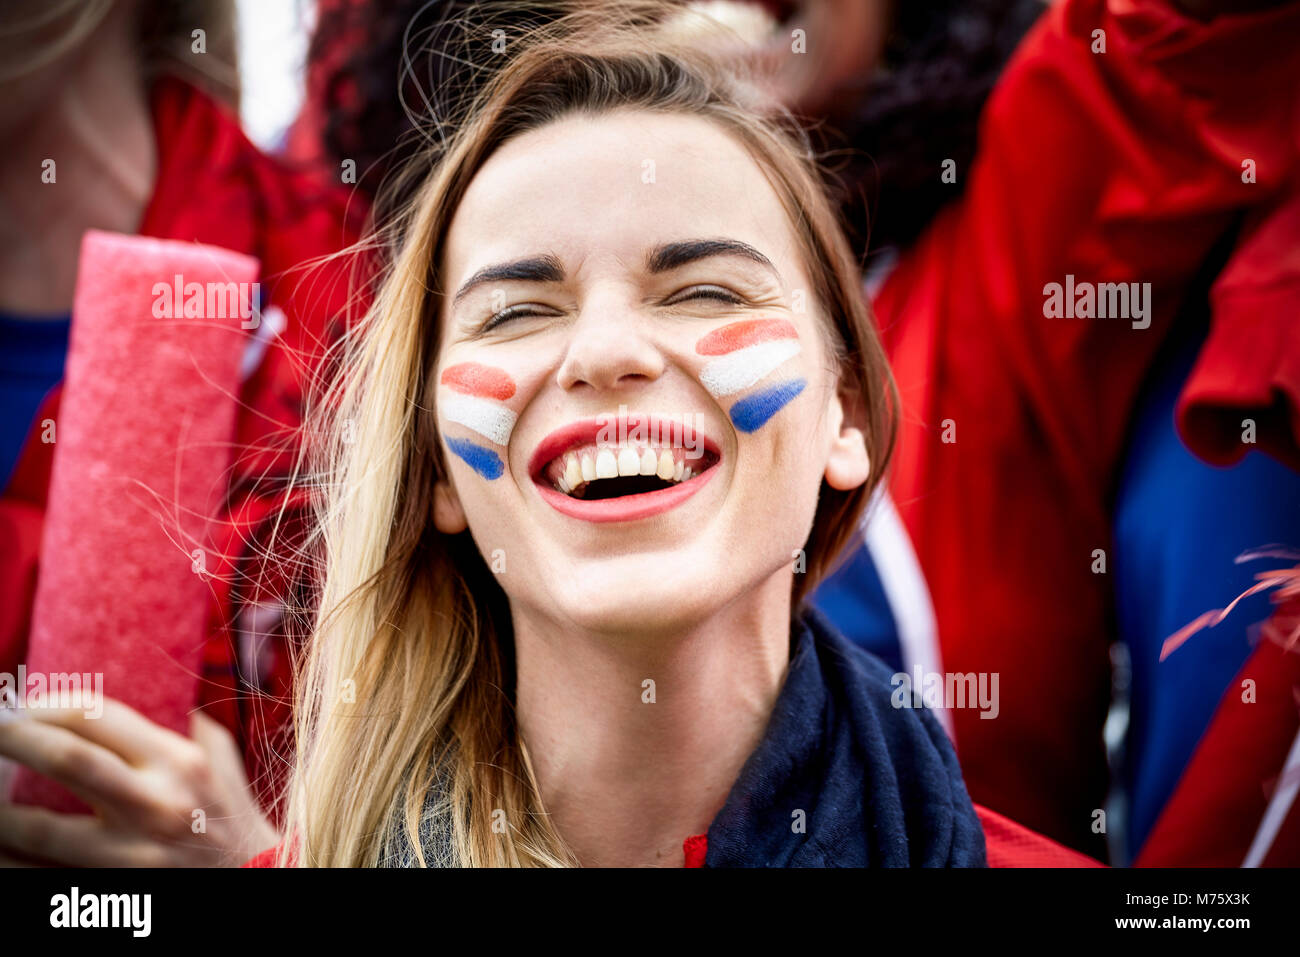 French football fan smiling at match, portrait - Stock Image